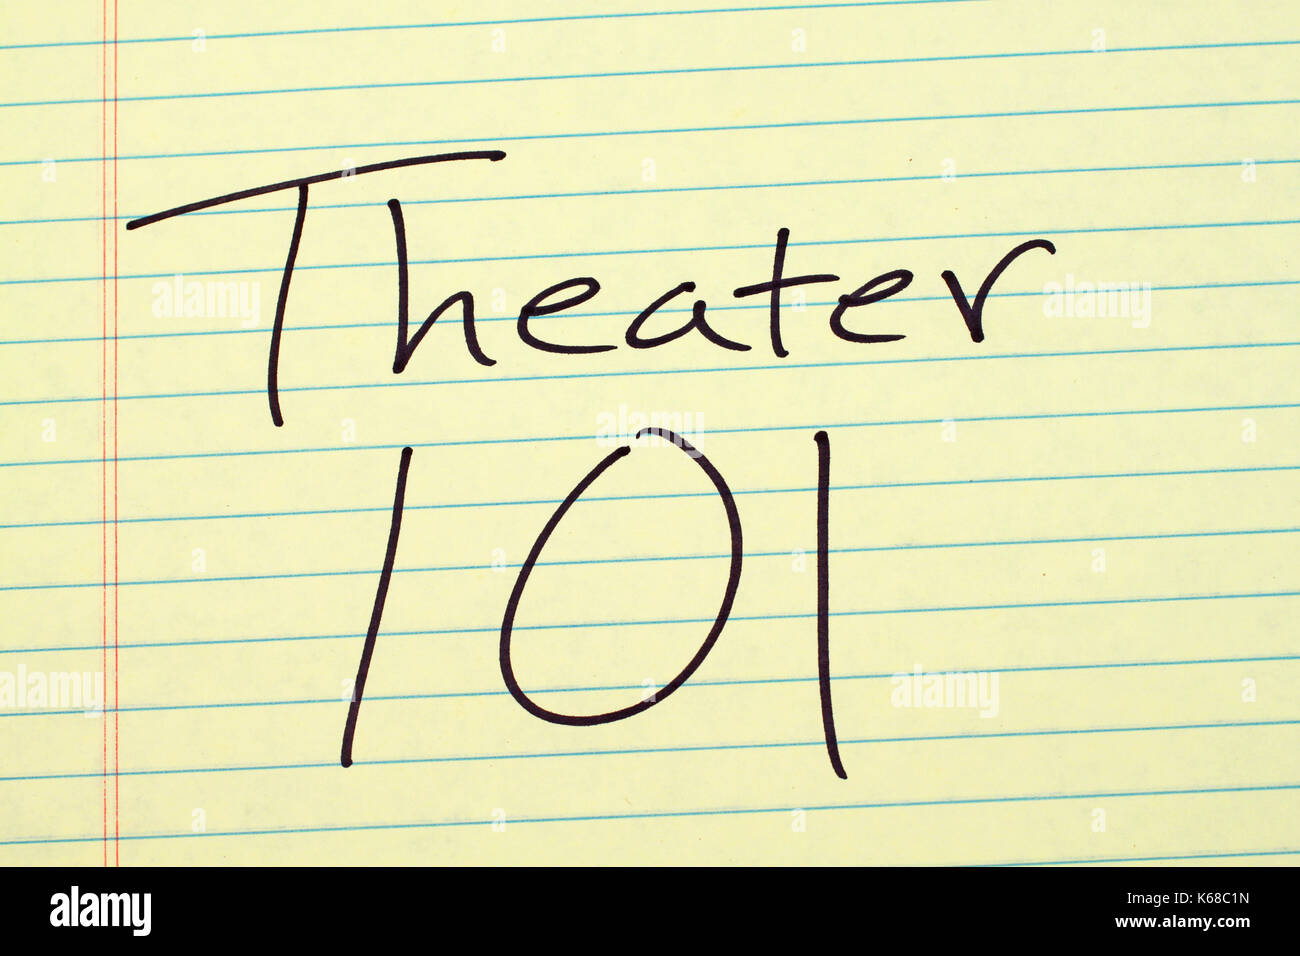 The words 'Theater 101' on a yellow legal pad - Stock Image